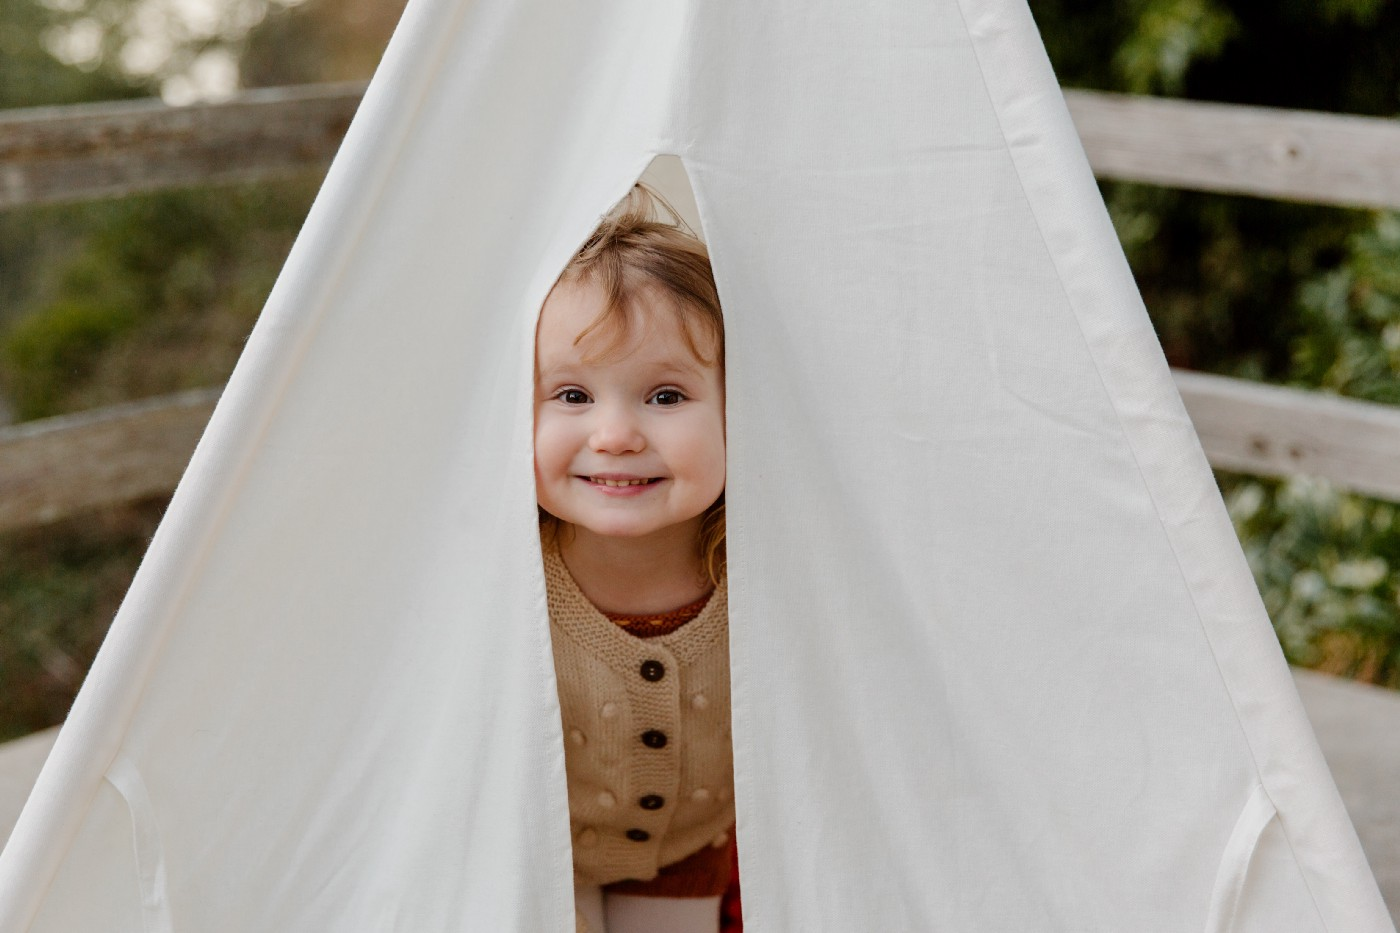 An angelic smiling baby girl peeking out naughtily from under a small white tent.